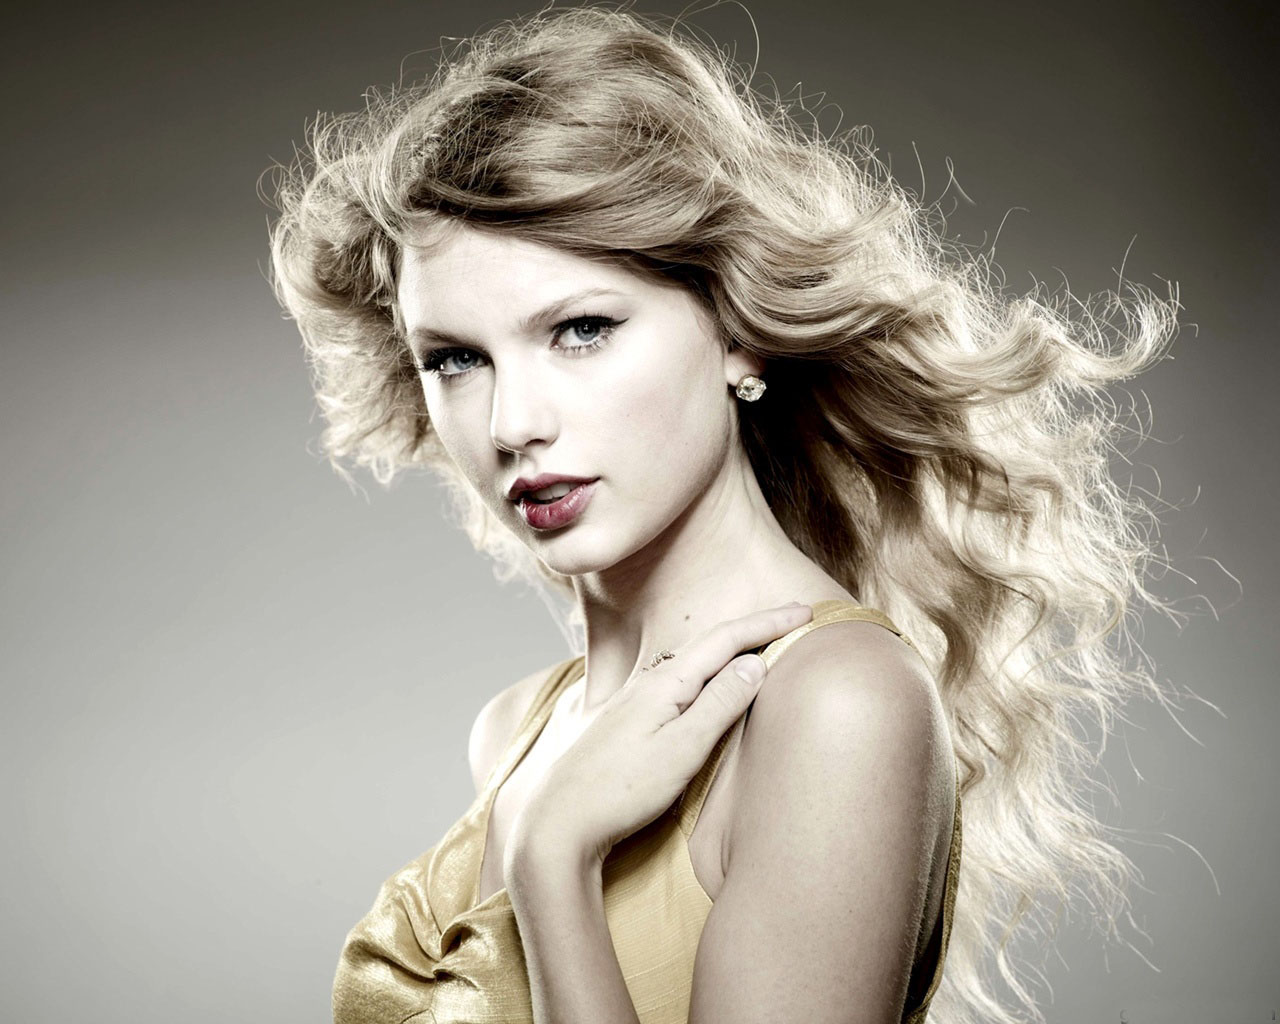 Taylor Swift Beautiful Images